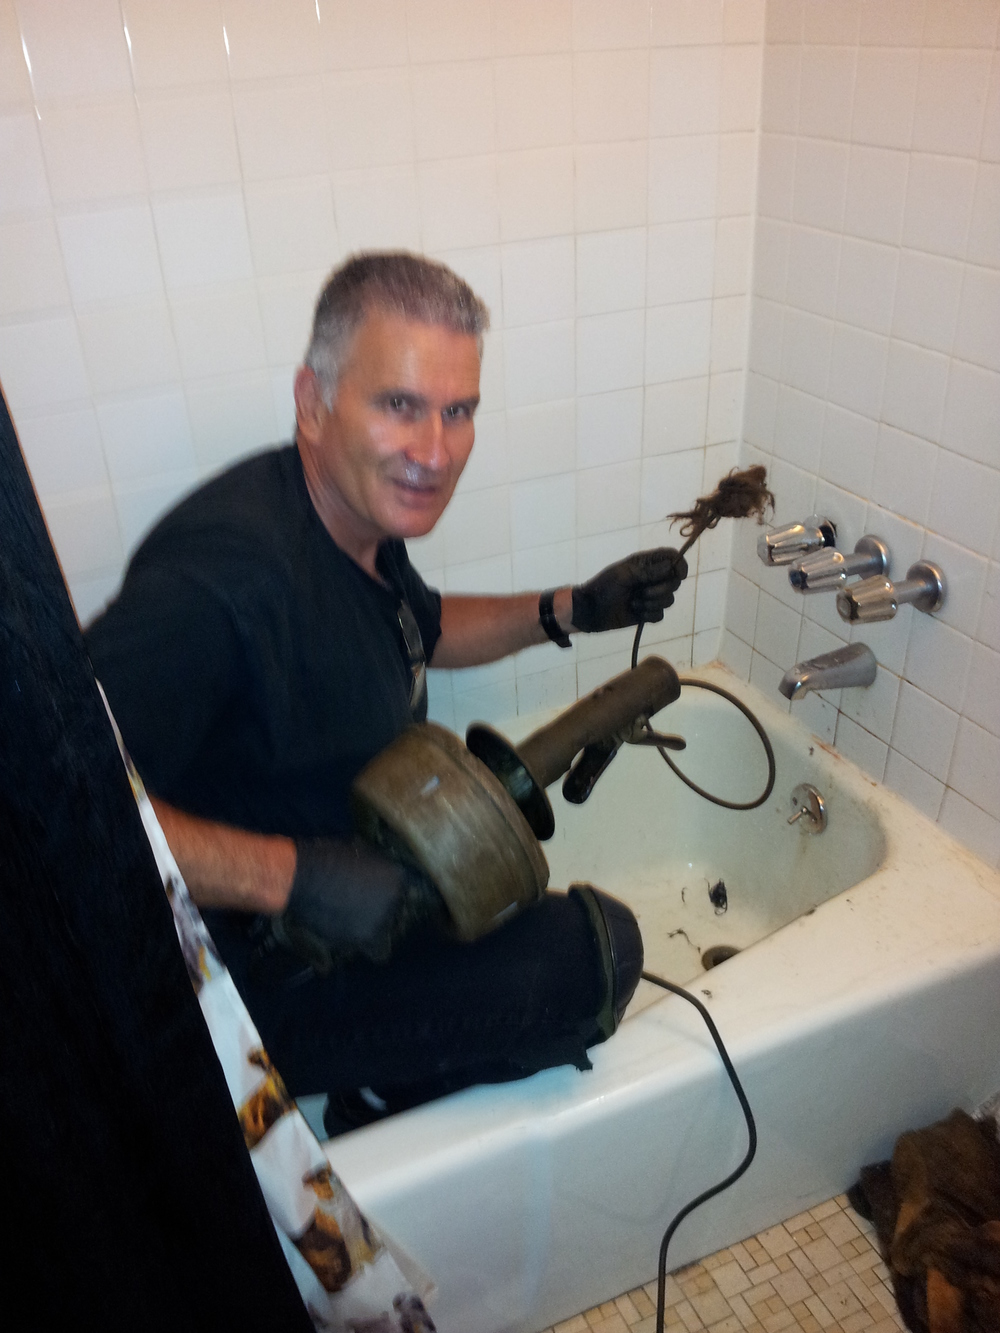 bathtub-unclogging-drain-medic.jpg